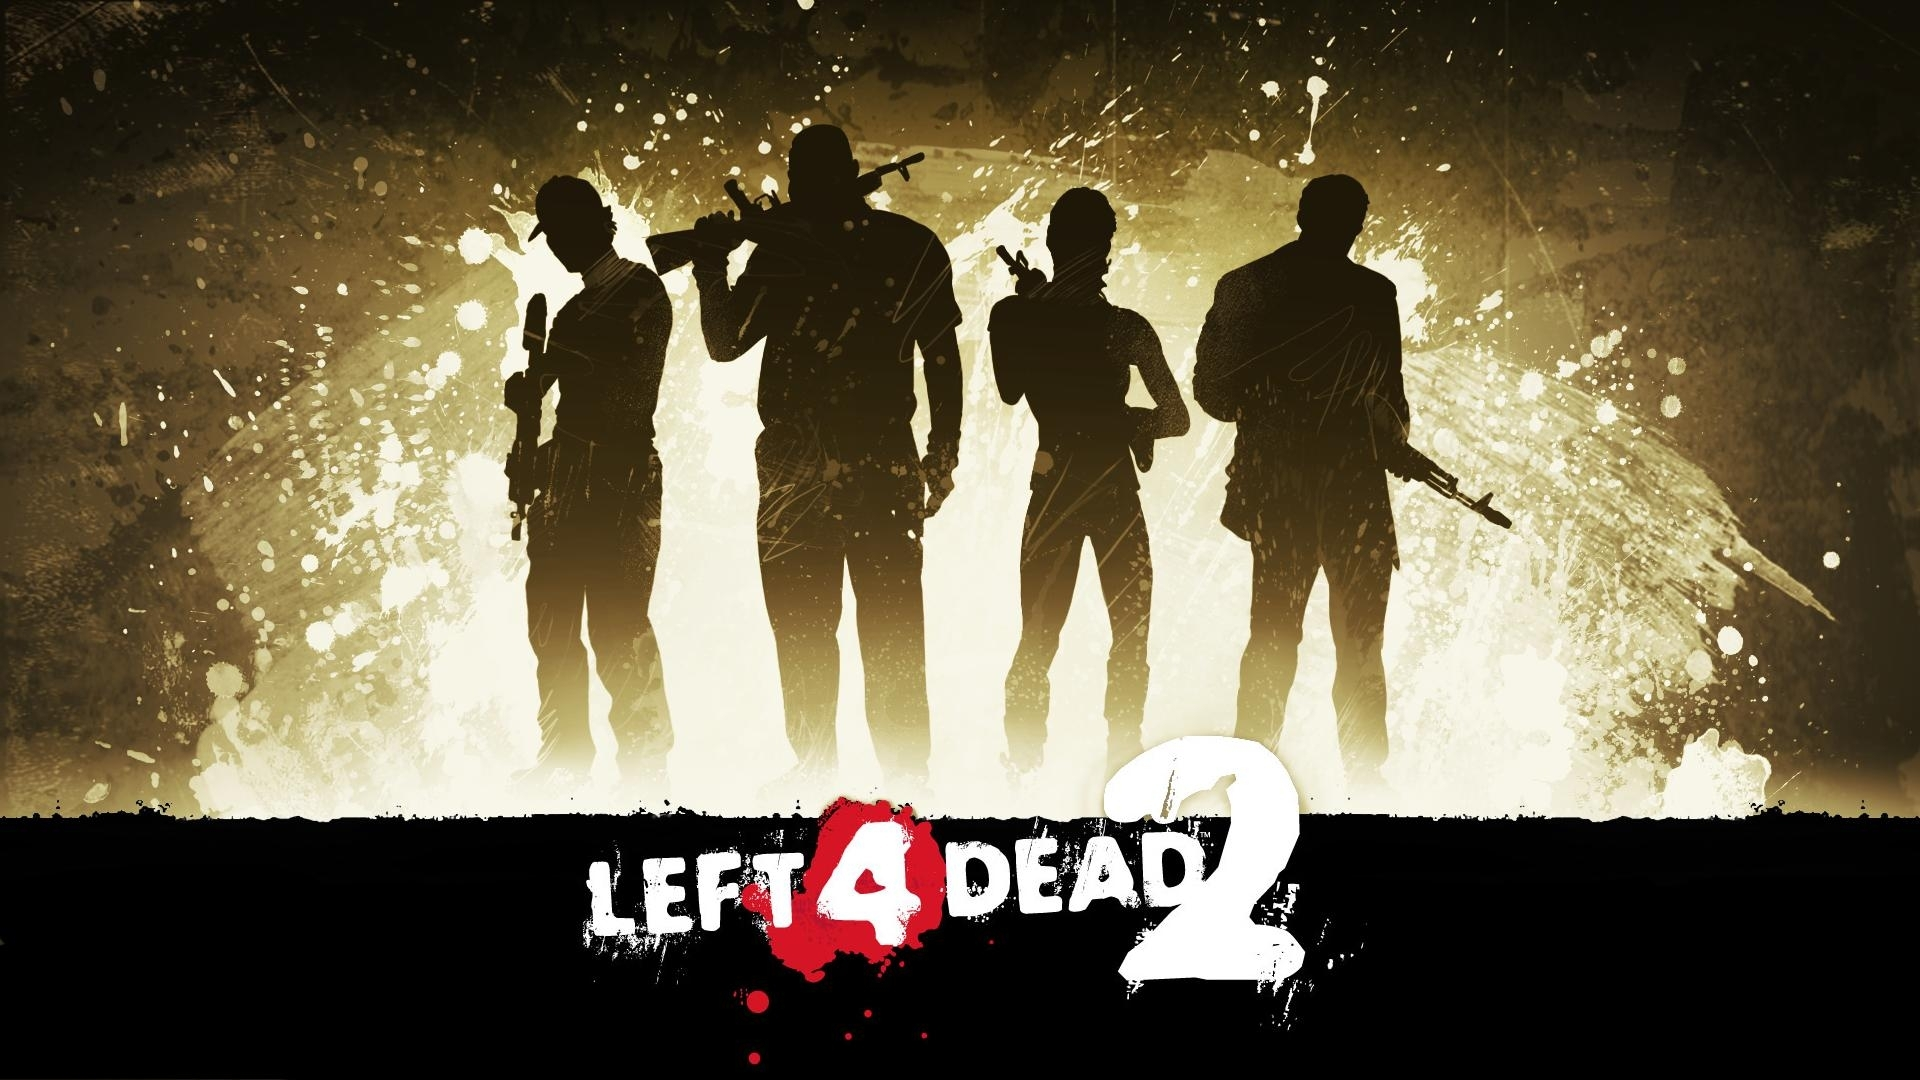 left 4 dead 2 wallpapers, special hdq left 4 dead 2 photos (special